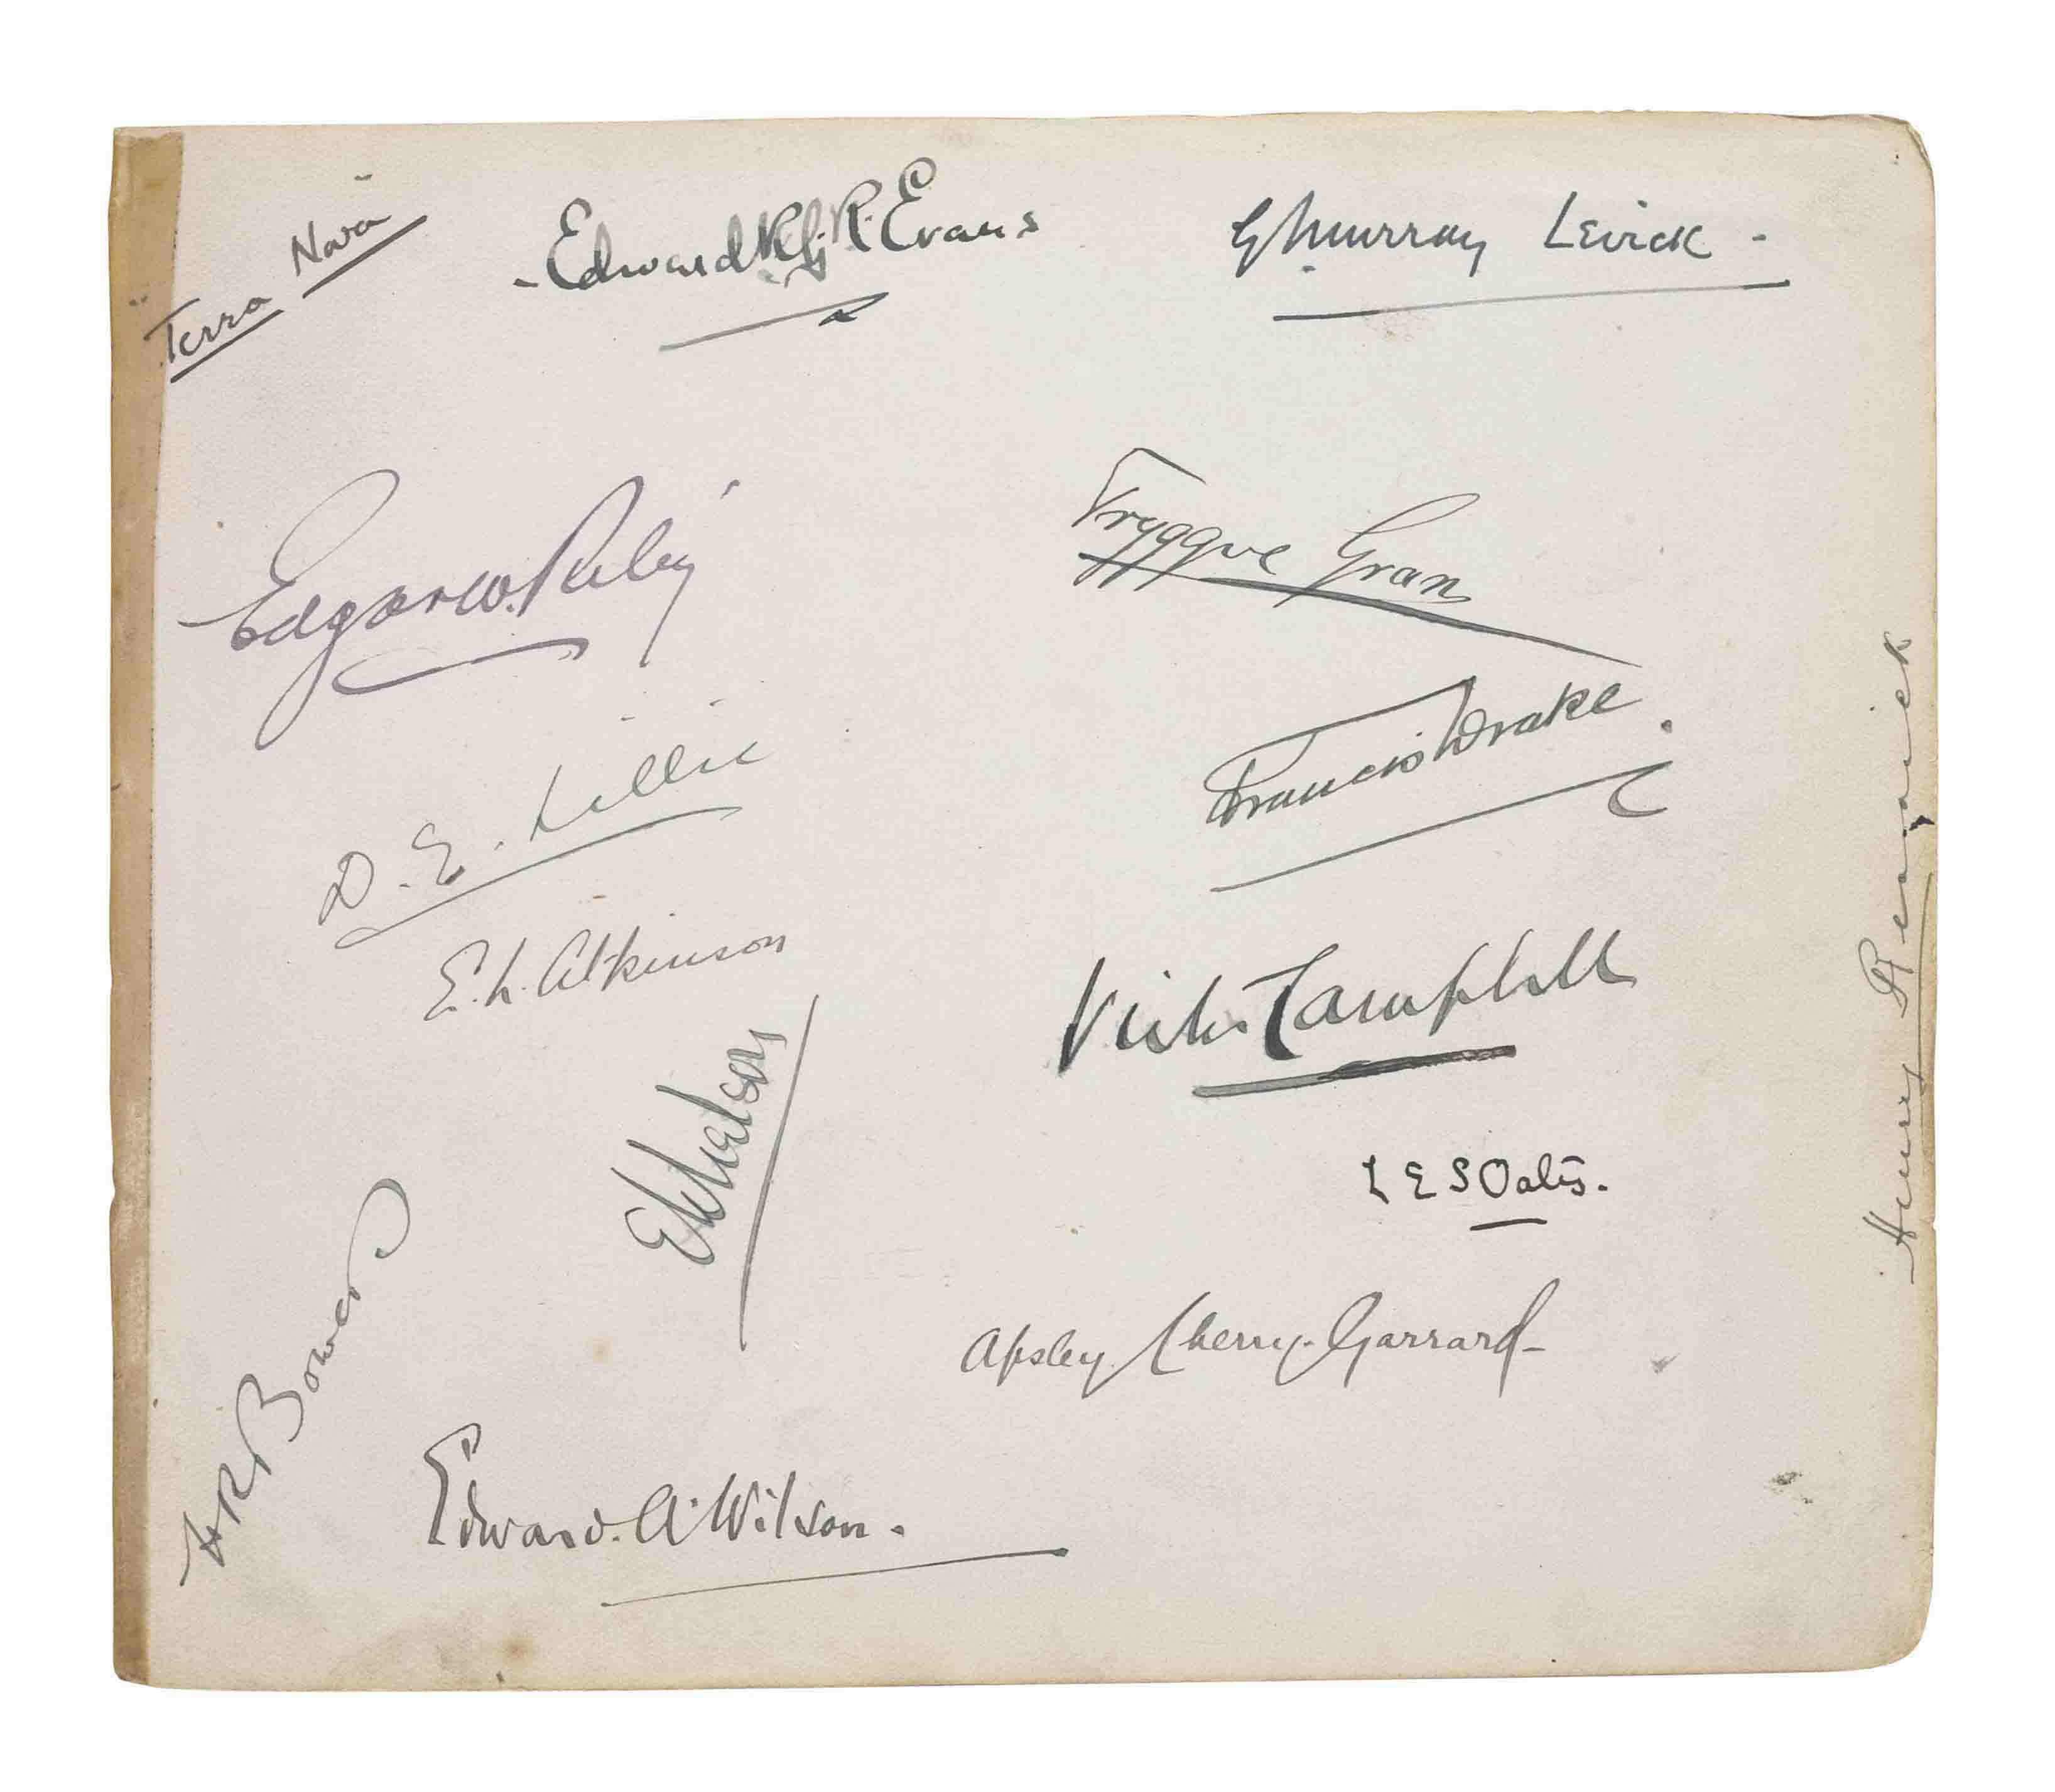 BRITISH ANTARCTIC EXPEDITION, 1910. Signatures of Robert Falcon Scott, Edward A. Wilson, Lawrence Oates, Henry Robertson Bowers, Apsley Cherry-Garrard, Edward R.G.R. Evans, E.L. Atkinson, Victor Campbell, G. Murray Levick, Edgar W. Riley, Tryggve Gran, D.G. Lillie, Francis Drake, Henry Rennick and E.W. Nelson, n.p. [possibly Cardiff], n.d. [?June 1910], on two leaves of an autograph album, the Scott signature alone on f.3 (with a portrait photograph and two lines excised from a newspaper), the remaining signatures on a single page (f.9), with manuscript heading 'Terra Nova' (reattached with old tape), the album oblong 4to, cloth covers (worn, the binding sprung).